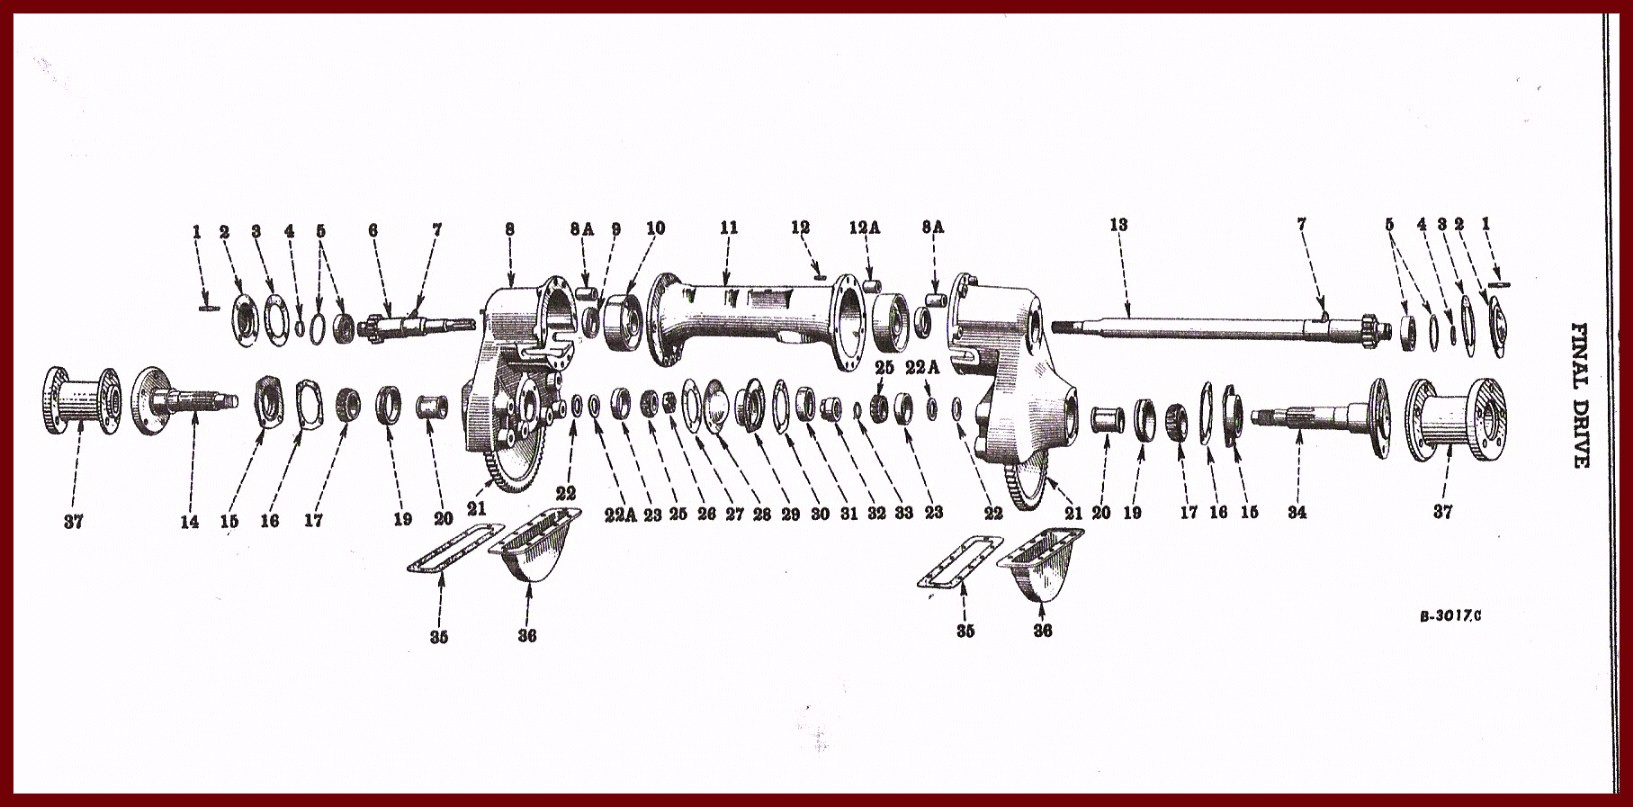 1948 Farmall Cub Wiring Diagram Solutions Ford F1 Panel Final Drive Electrical Work